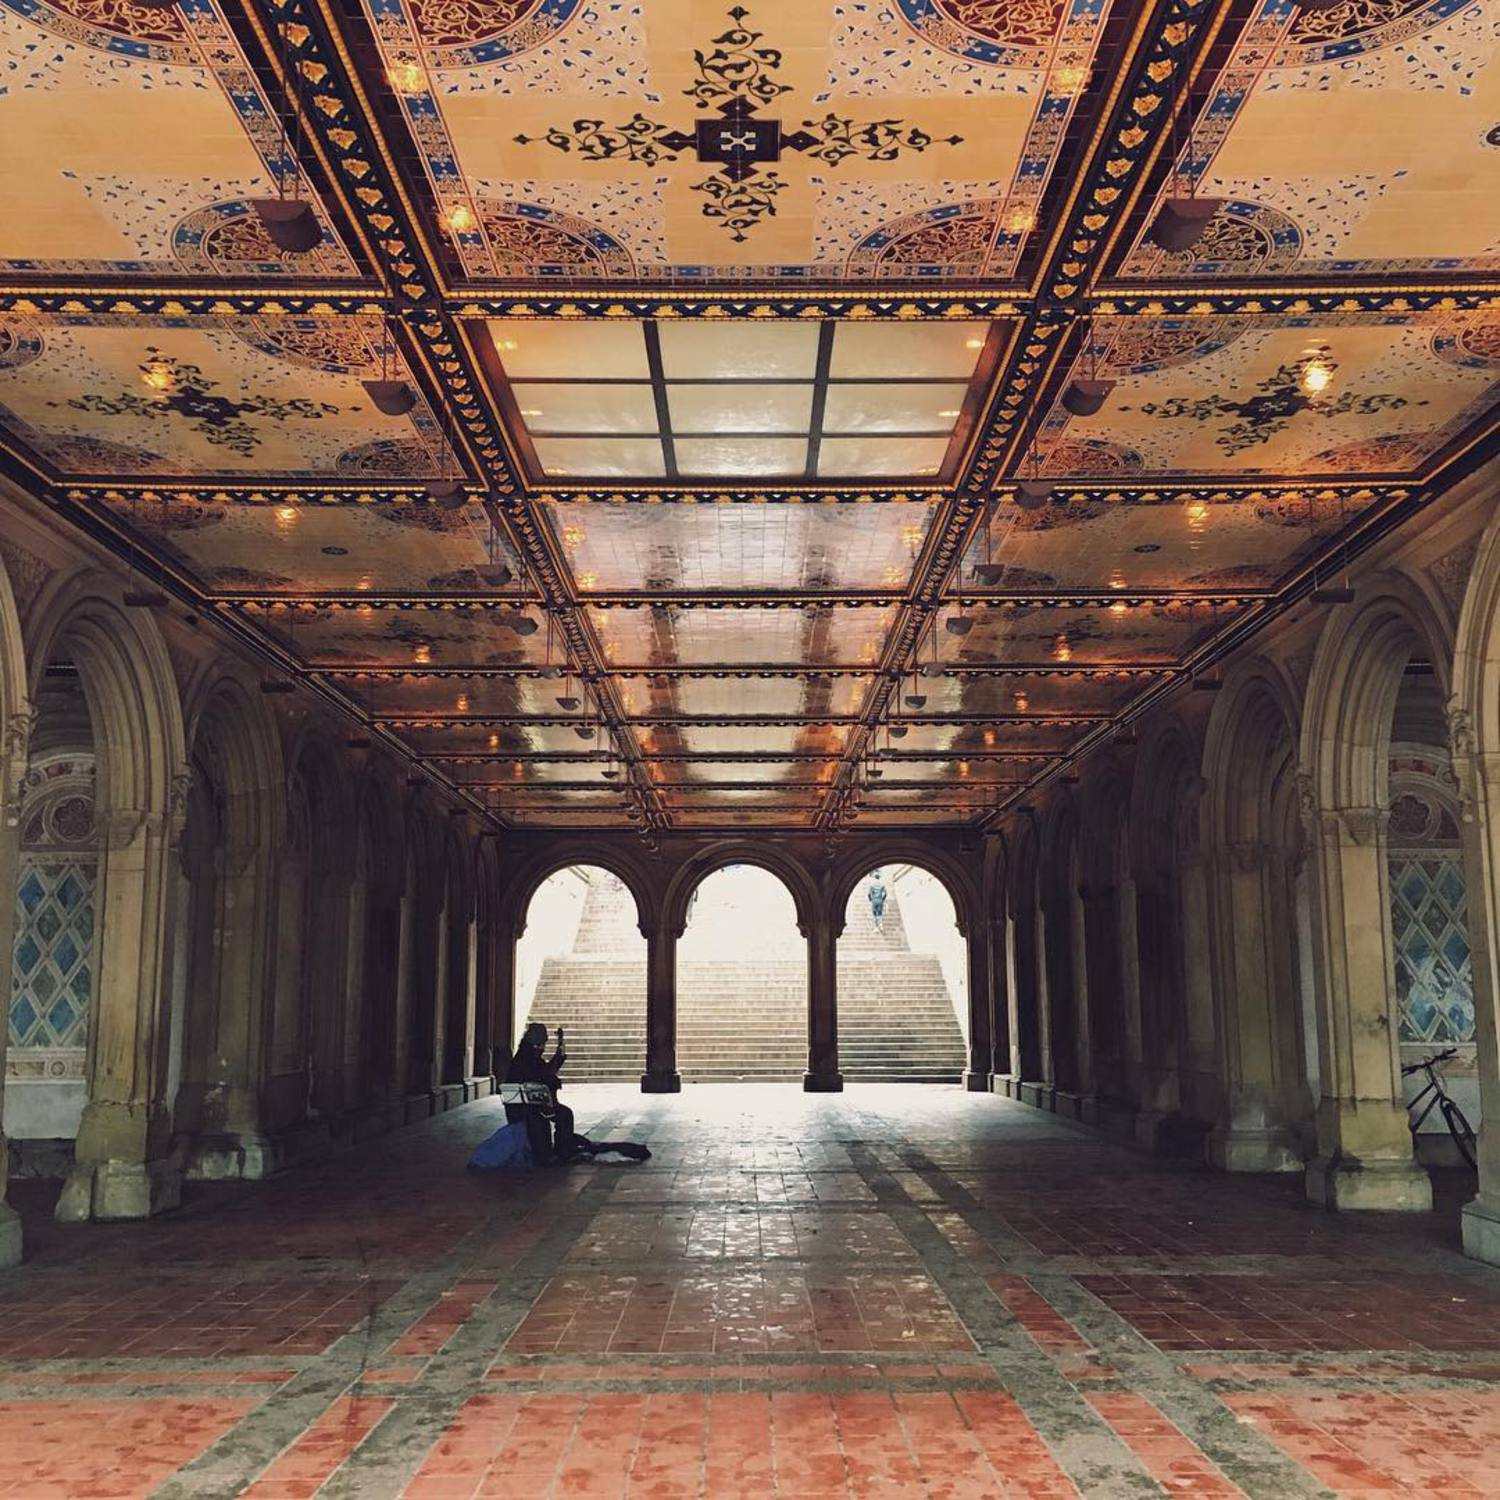 Bethesda Terrace...💕 The stonework of the terrace is a riot of symbolic carvings and mini sculptures, and there's much fun to be looking for the most intriguing of the carving, found on one of the stone posts at the top of the stairs, a flying witch on her broomstick above a jack-o'-lantern pumpkin. This may be a reference to the Irish immigrants who built the terrace and brought Halloween to America with them.  #picturesofnewyork